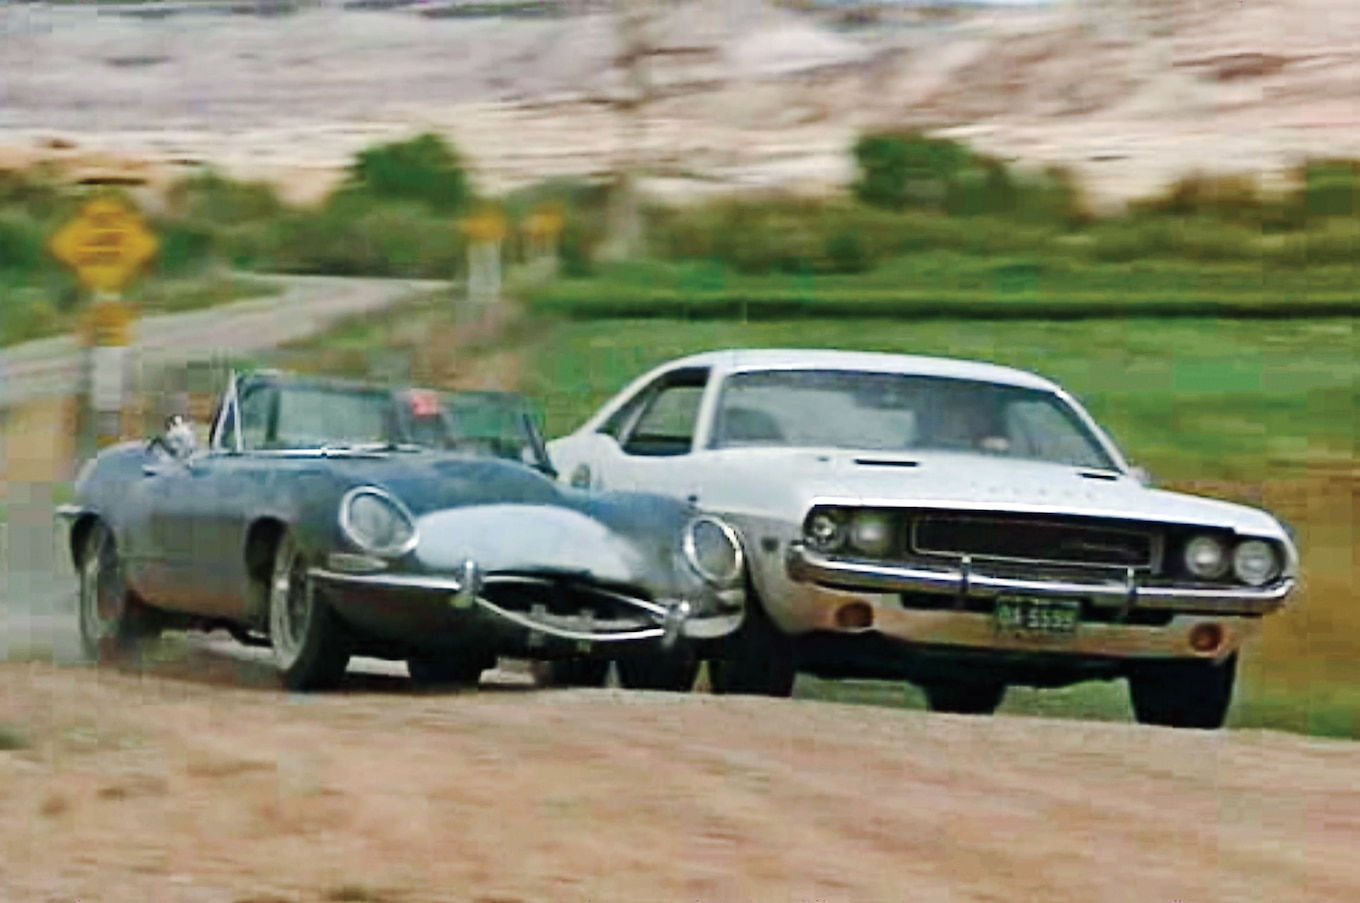 Police Car Chase Wallpaper Casting Pearls Top 10 Movie Cars In A Supporting Role